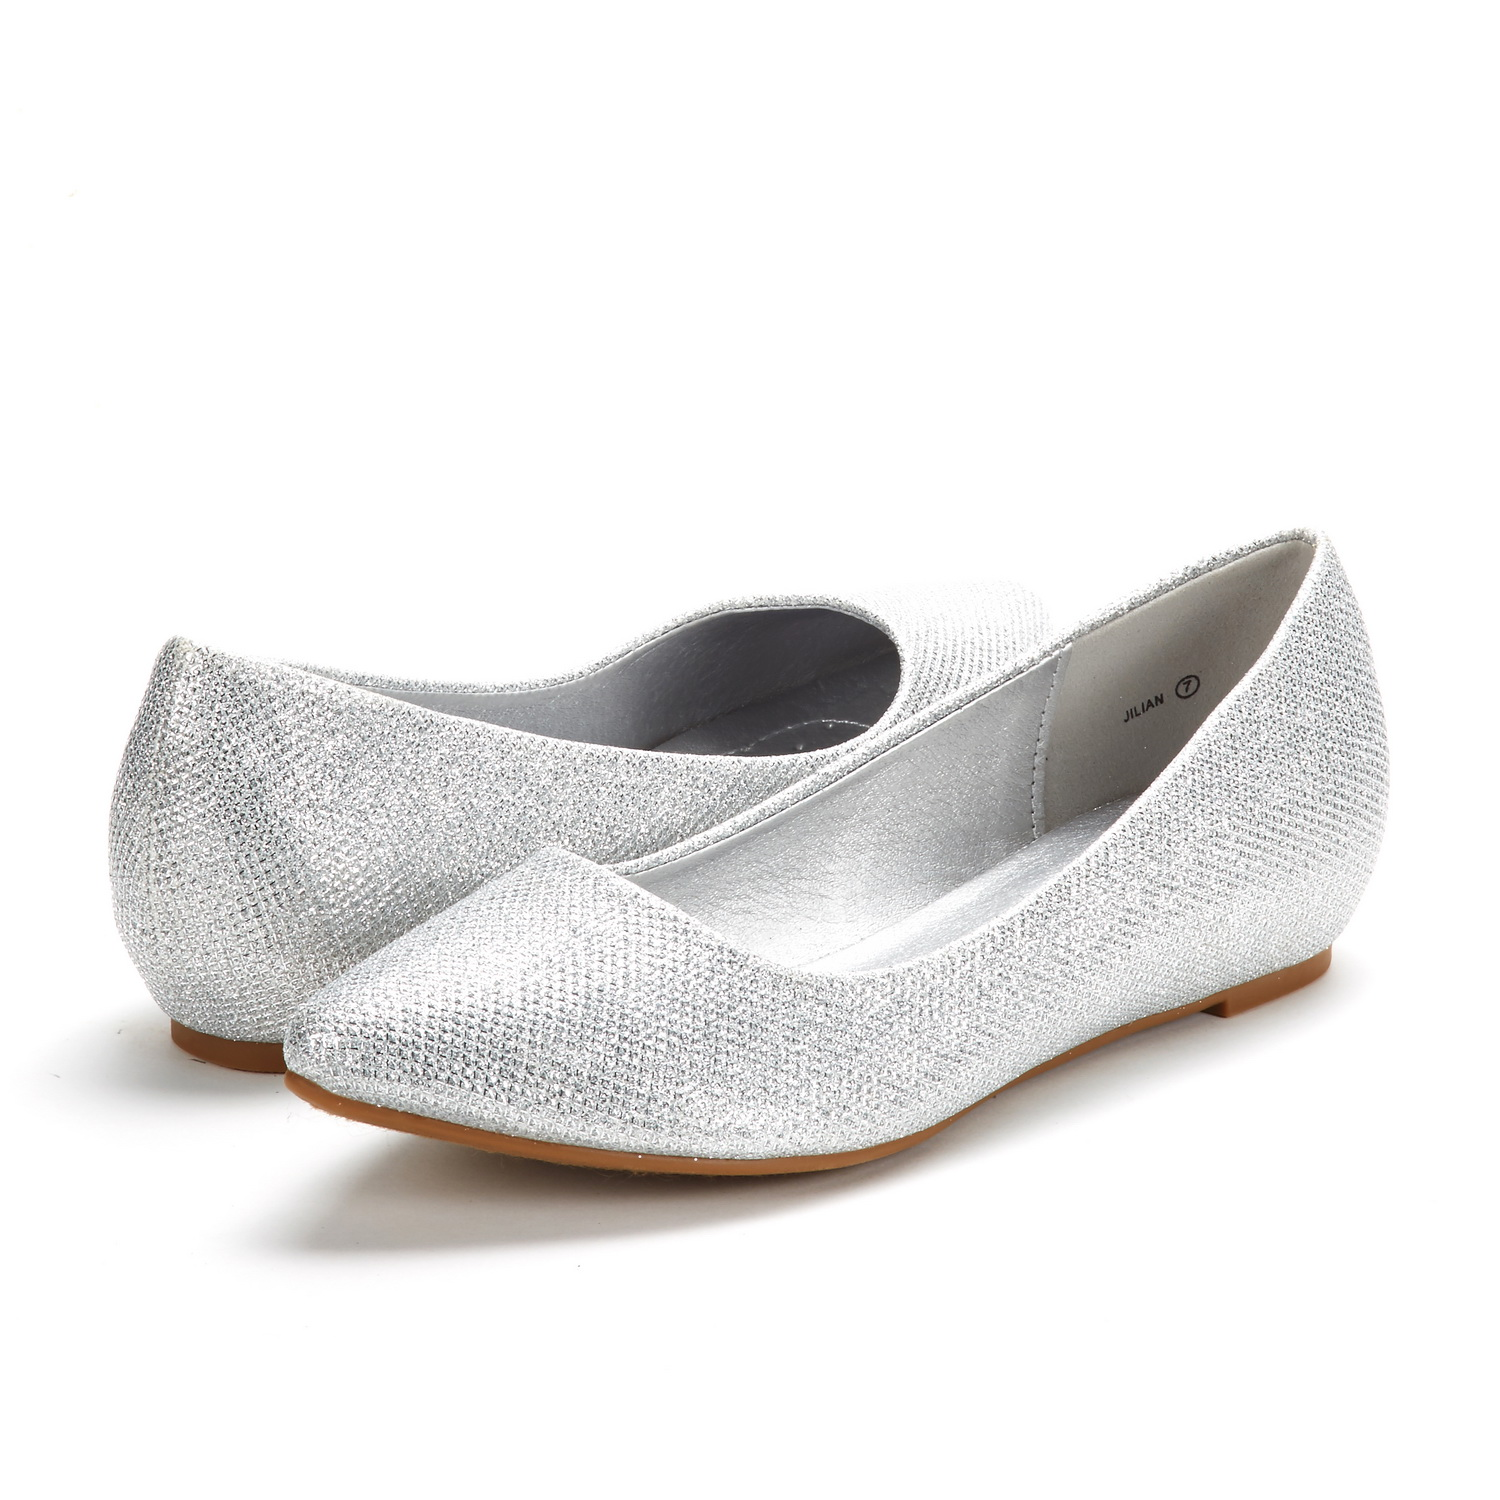 DREAM-PAIRS-Women-Low-Wedge-Flats-Ladies-Pointed-Toe-Slip-On-Comfort-Flat-Shoes thumbnail 23